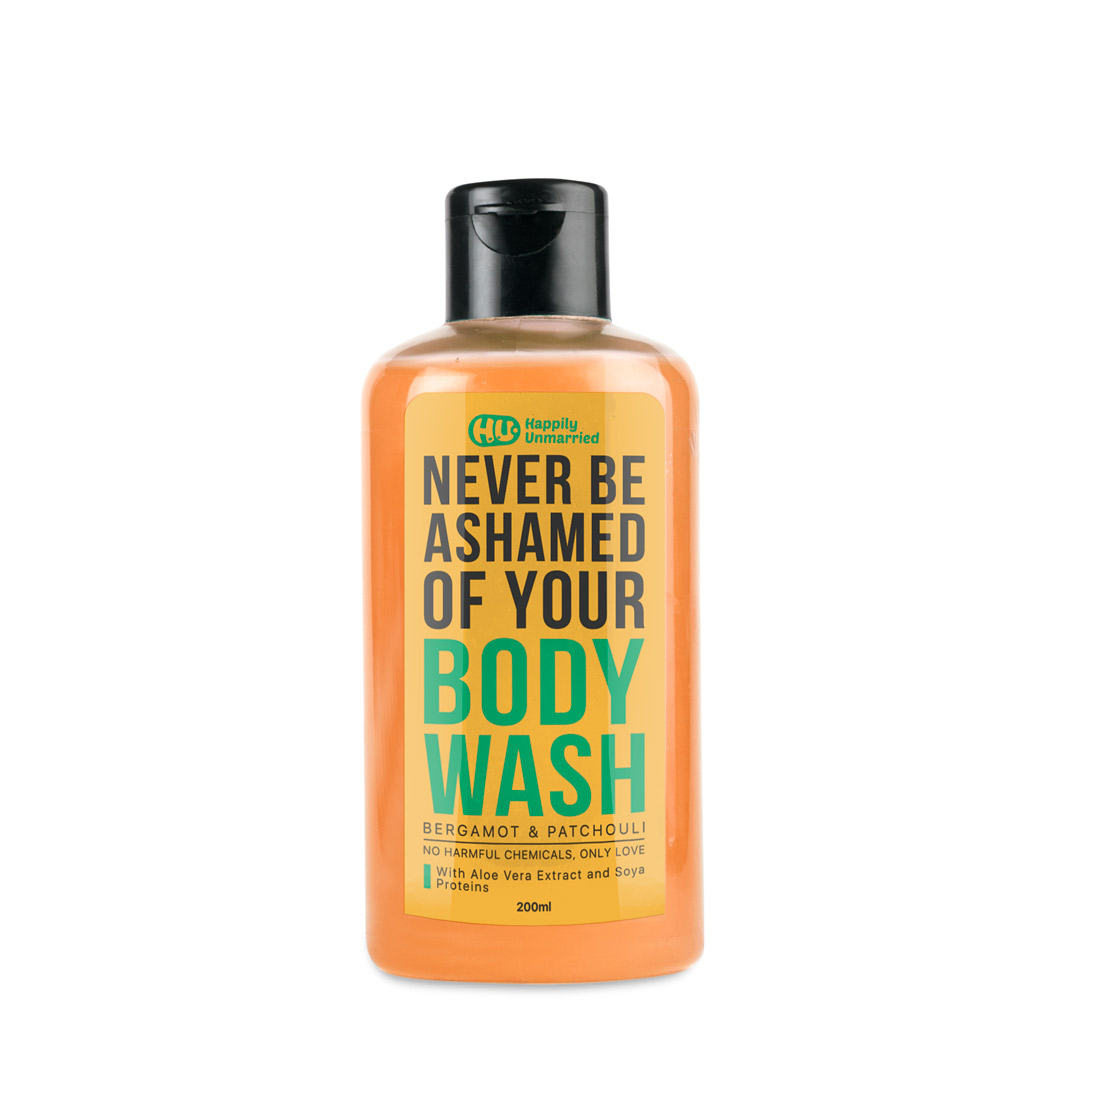 Body Wash - Bergamot & Patchouli - 200ml